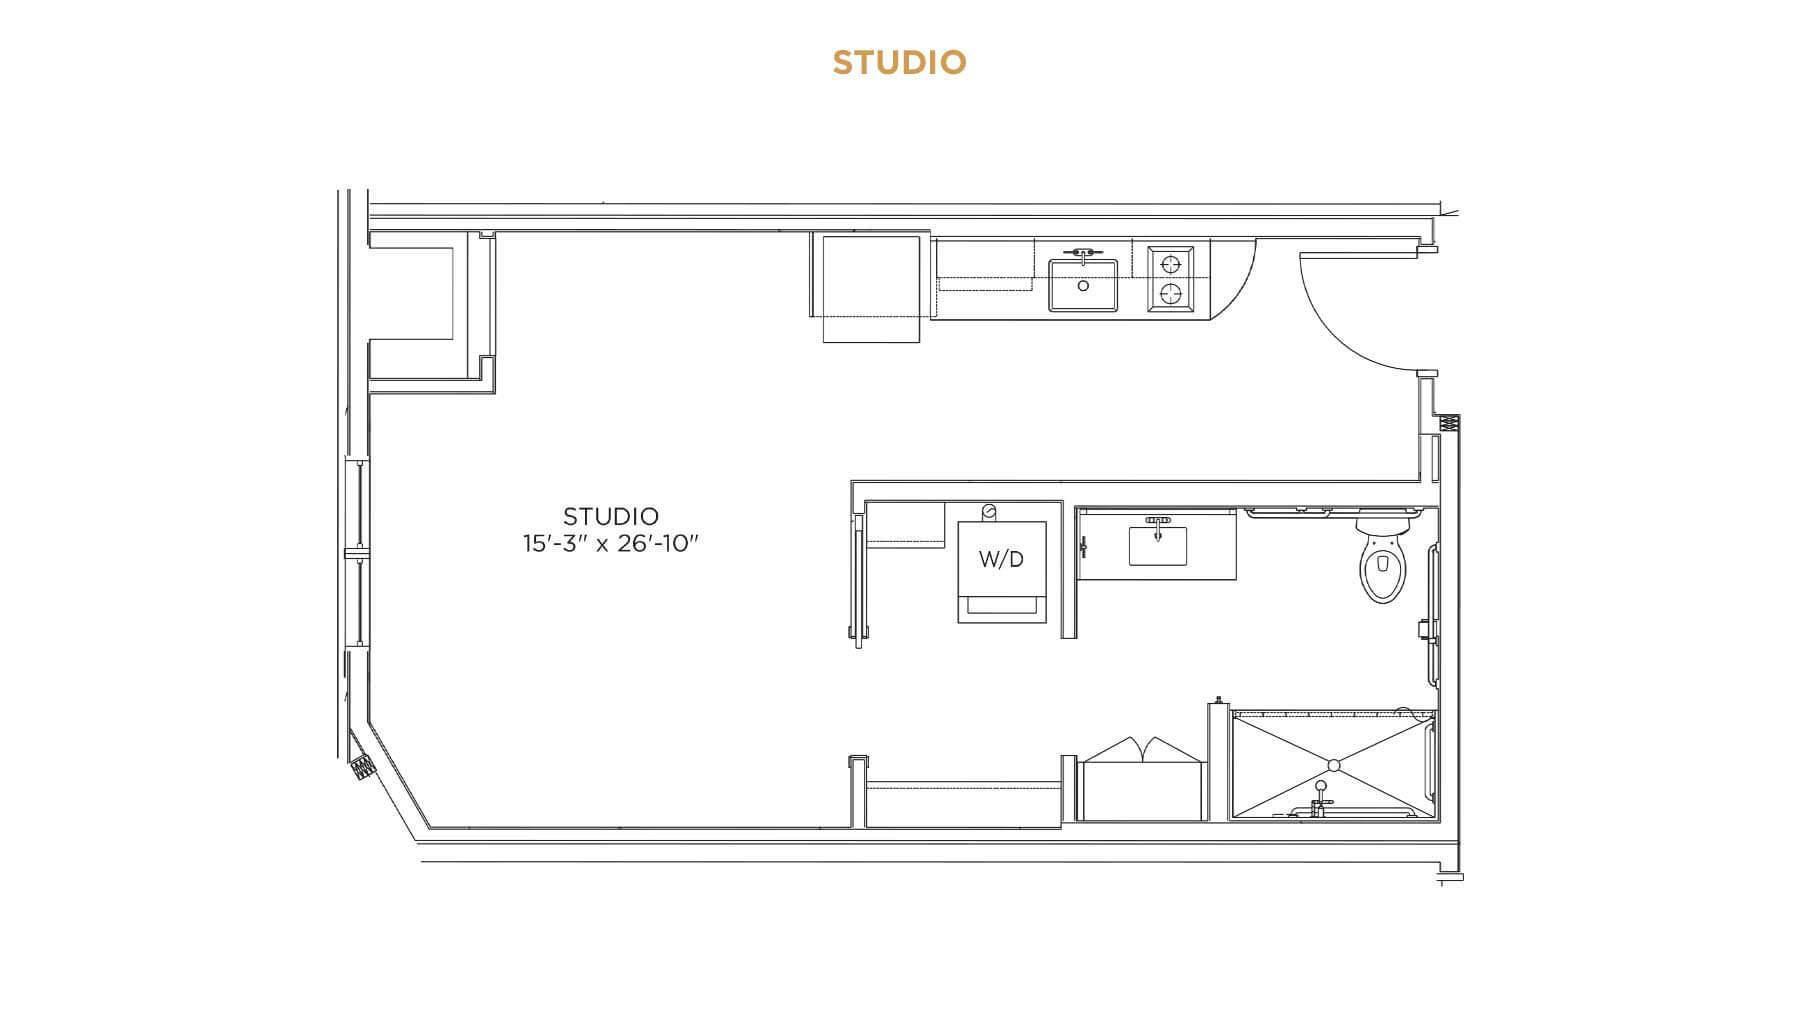 Studio Floor Plan - Assisted Living Near Me - Grand Living at Indian Creek